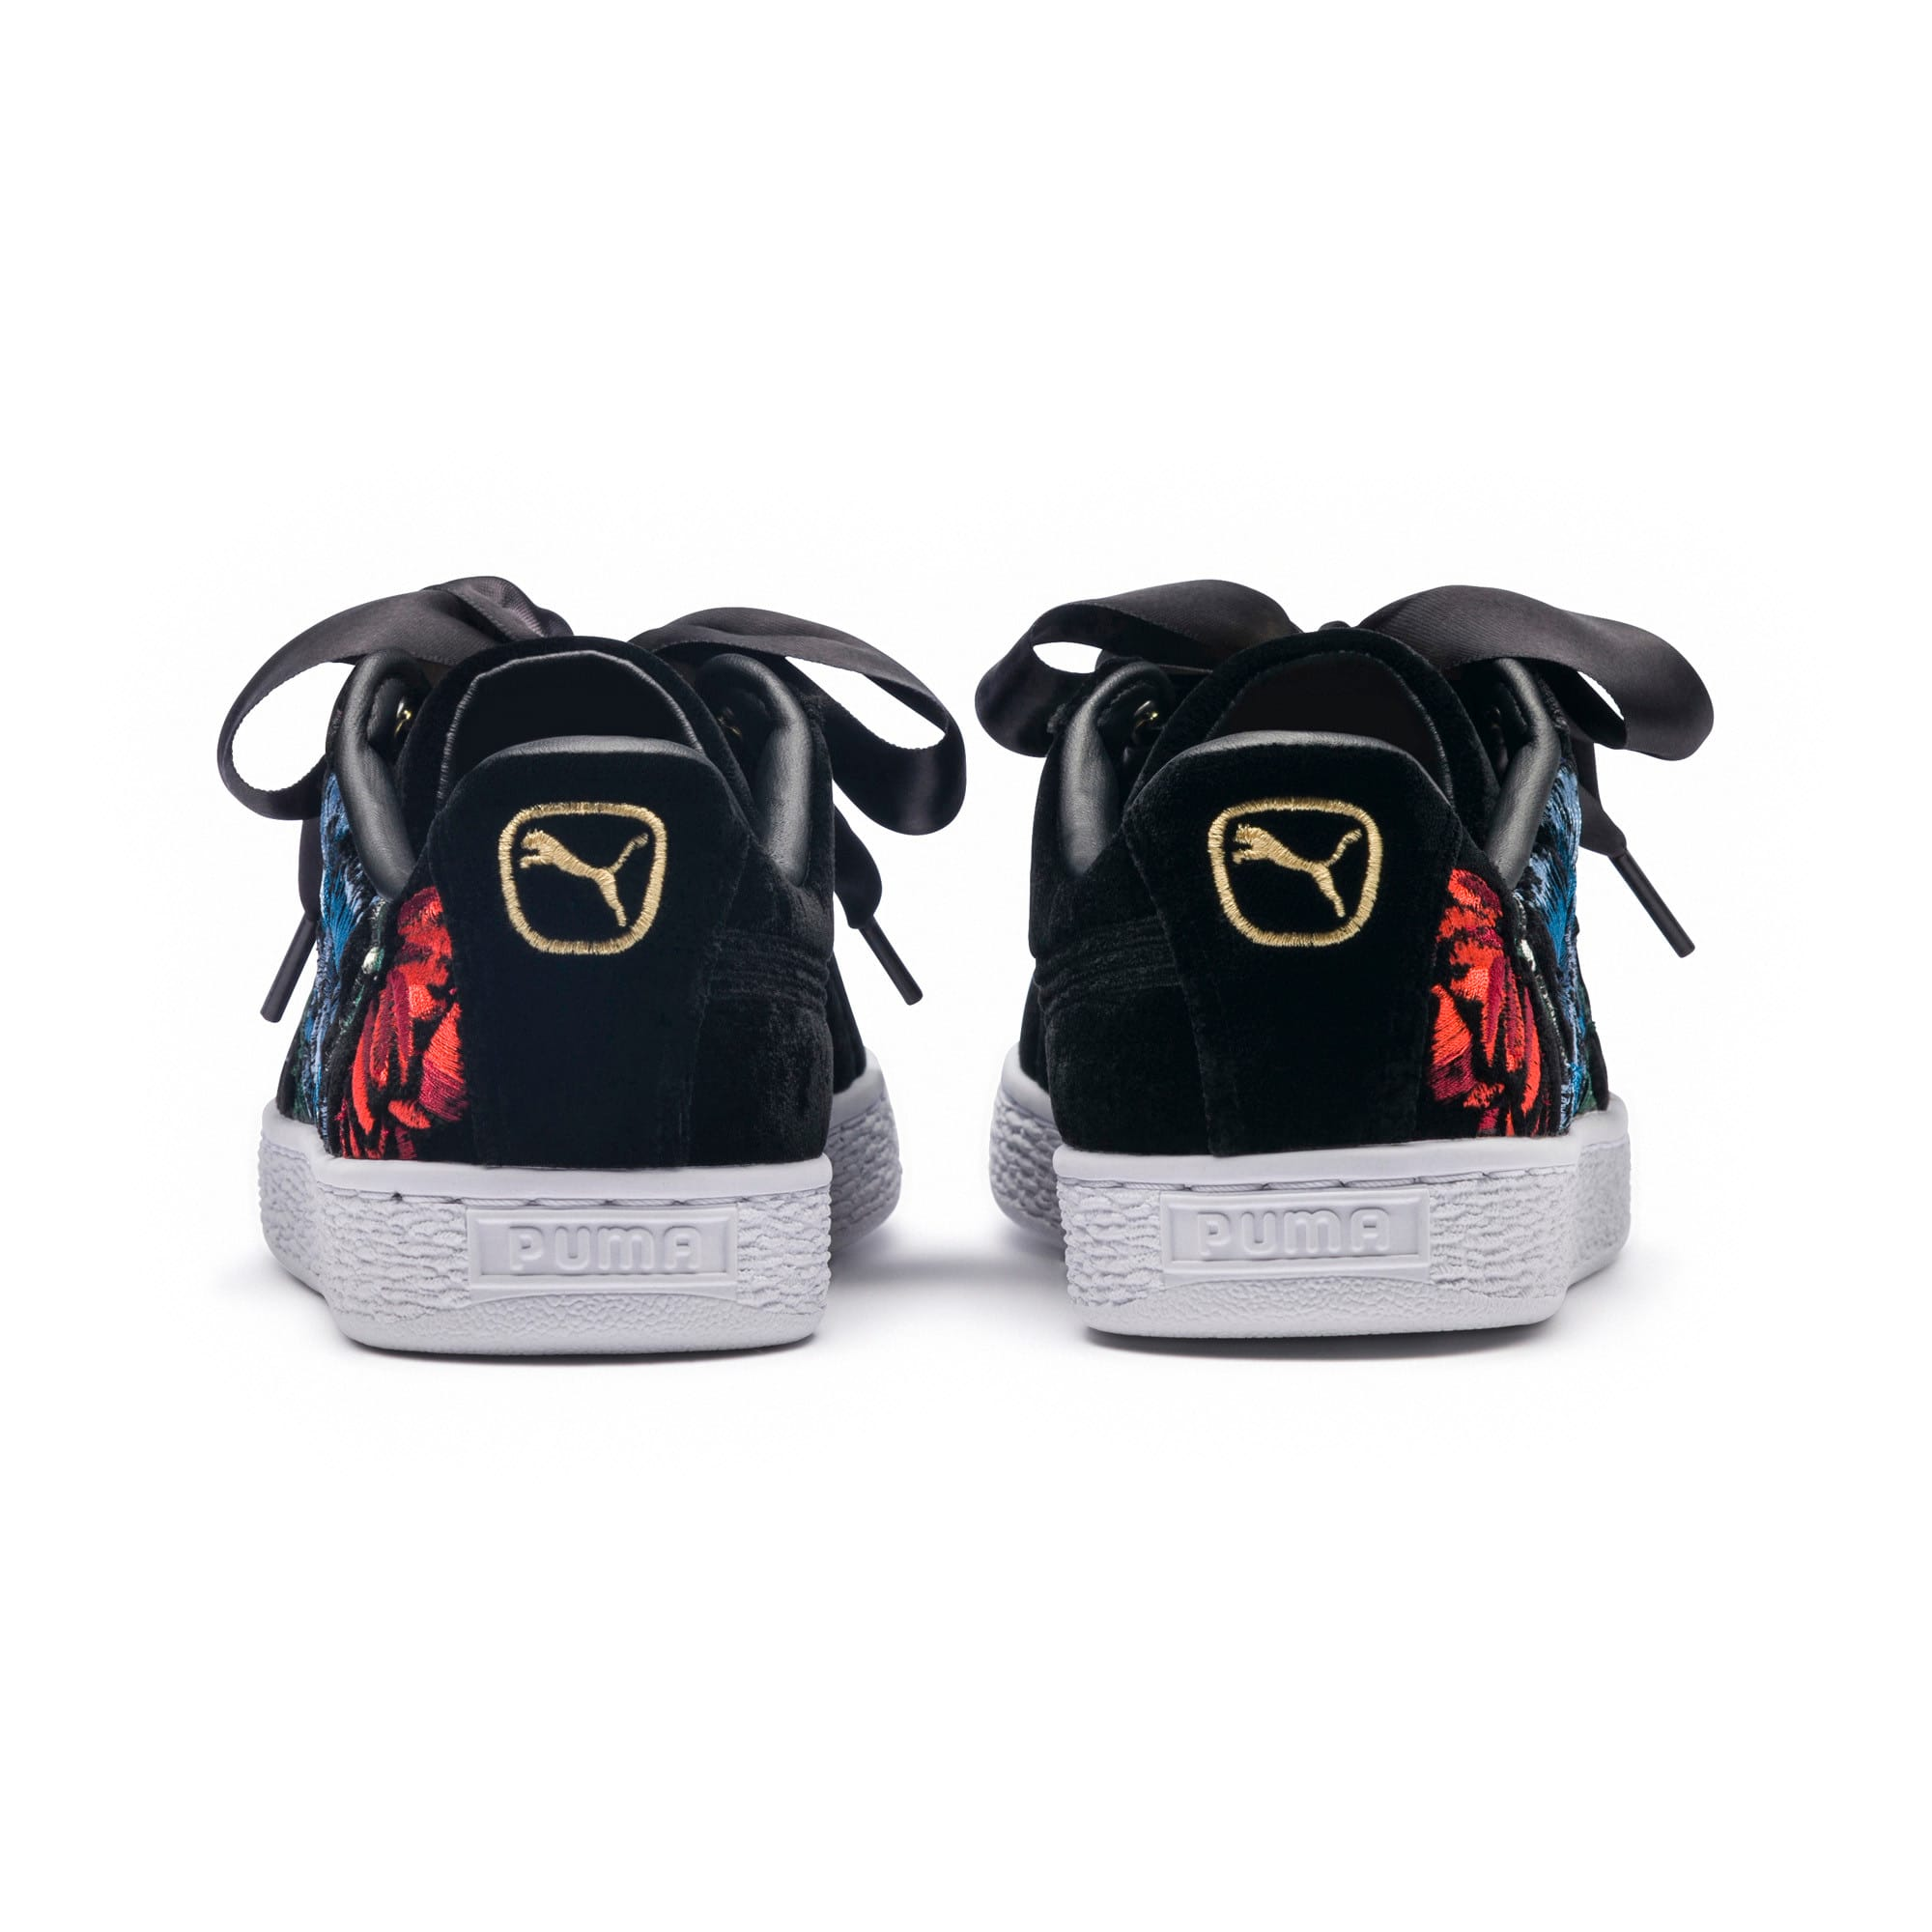 Thumbnail 4 of Basket Heart Hyper Embroidery Women's Trainers, Puma Black, medium-IND